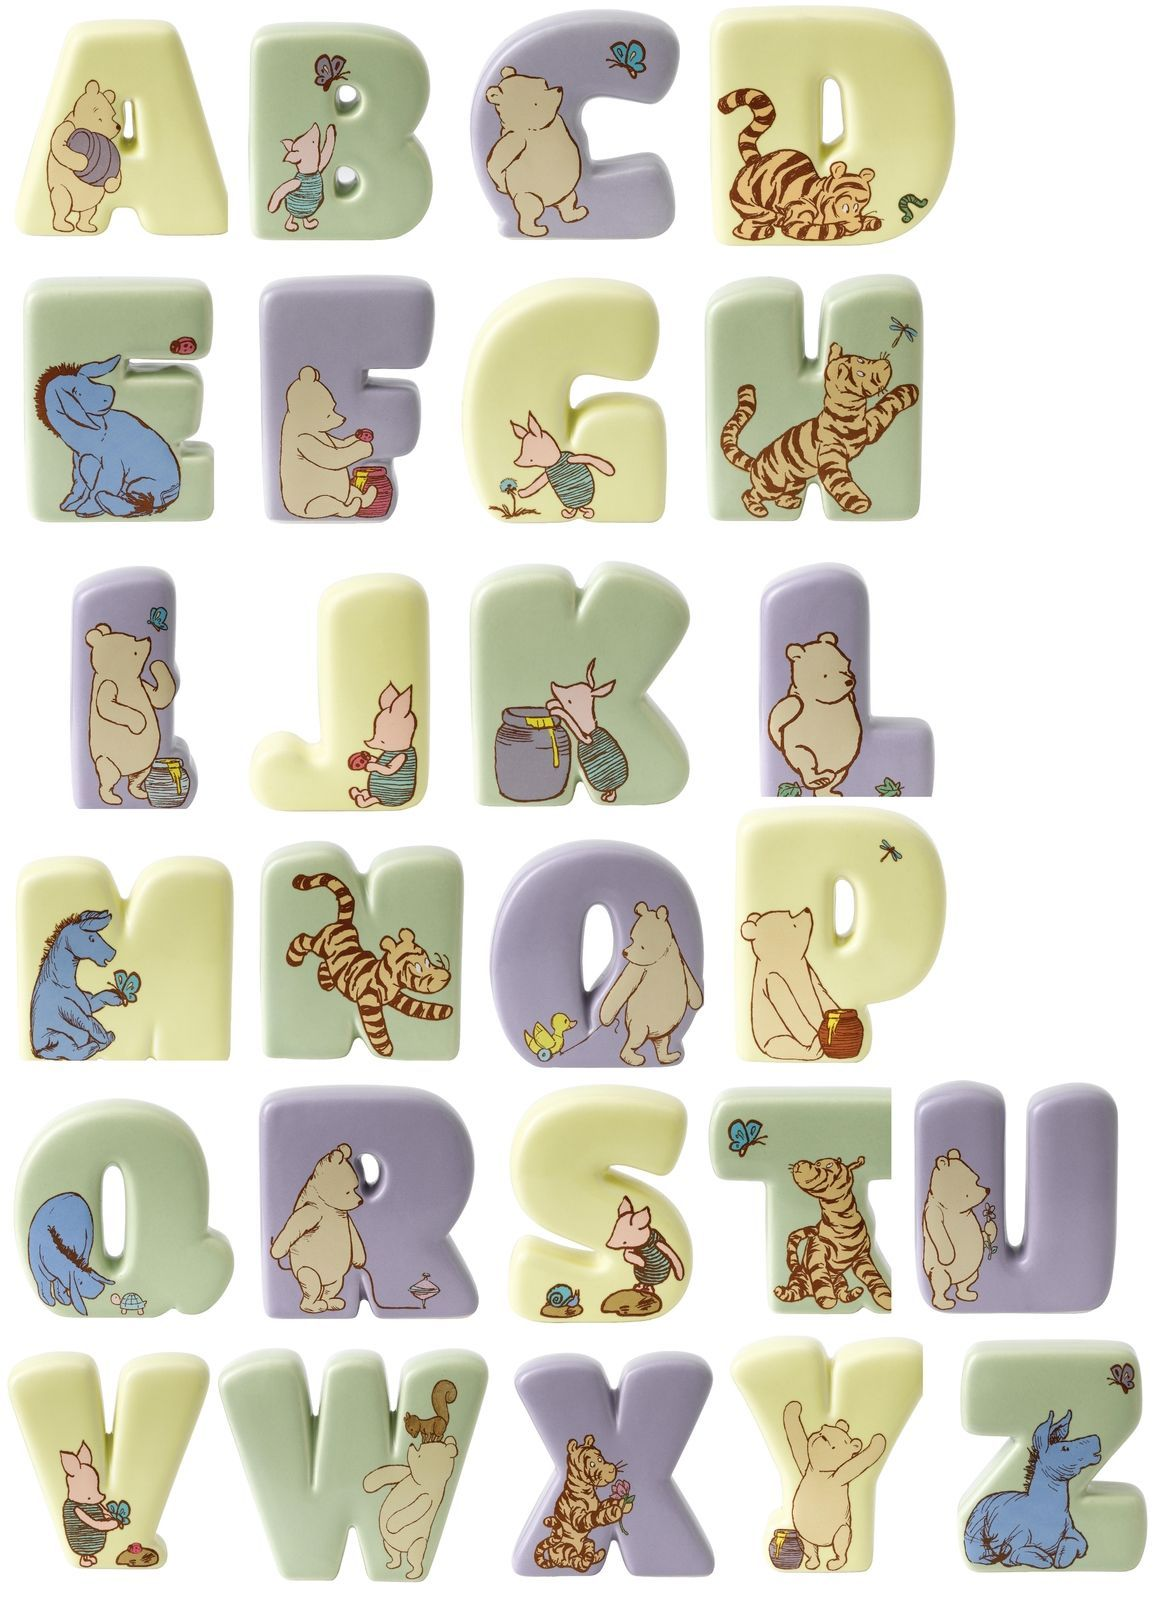 Disney Clic Winnie The Pooh Border Fine Art Ceramic Alphabet Letter Letters